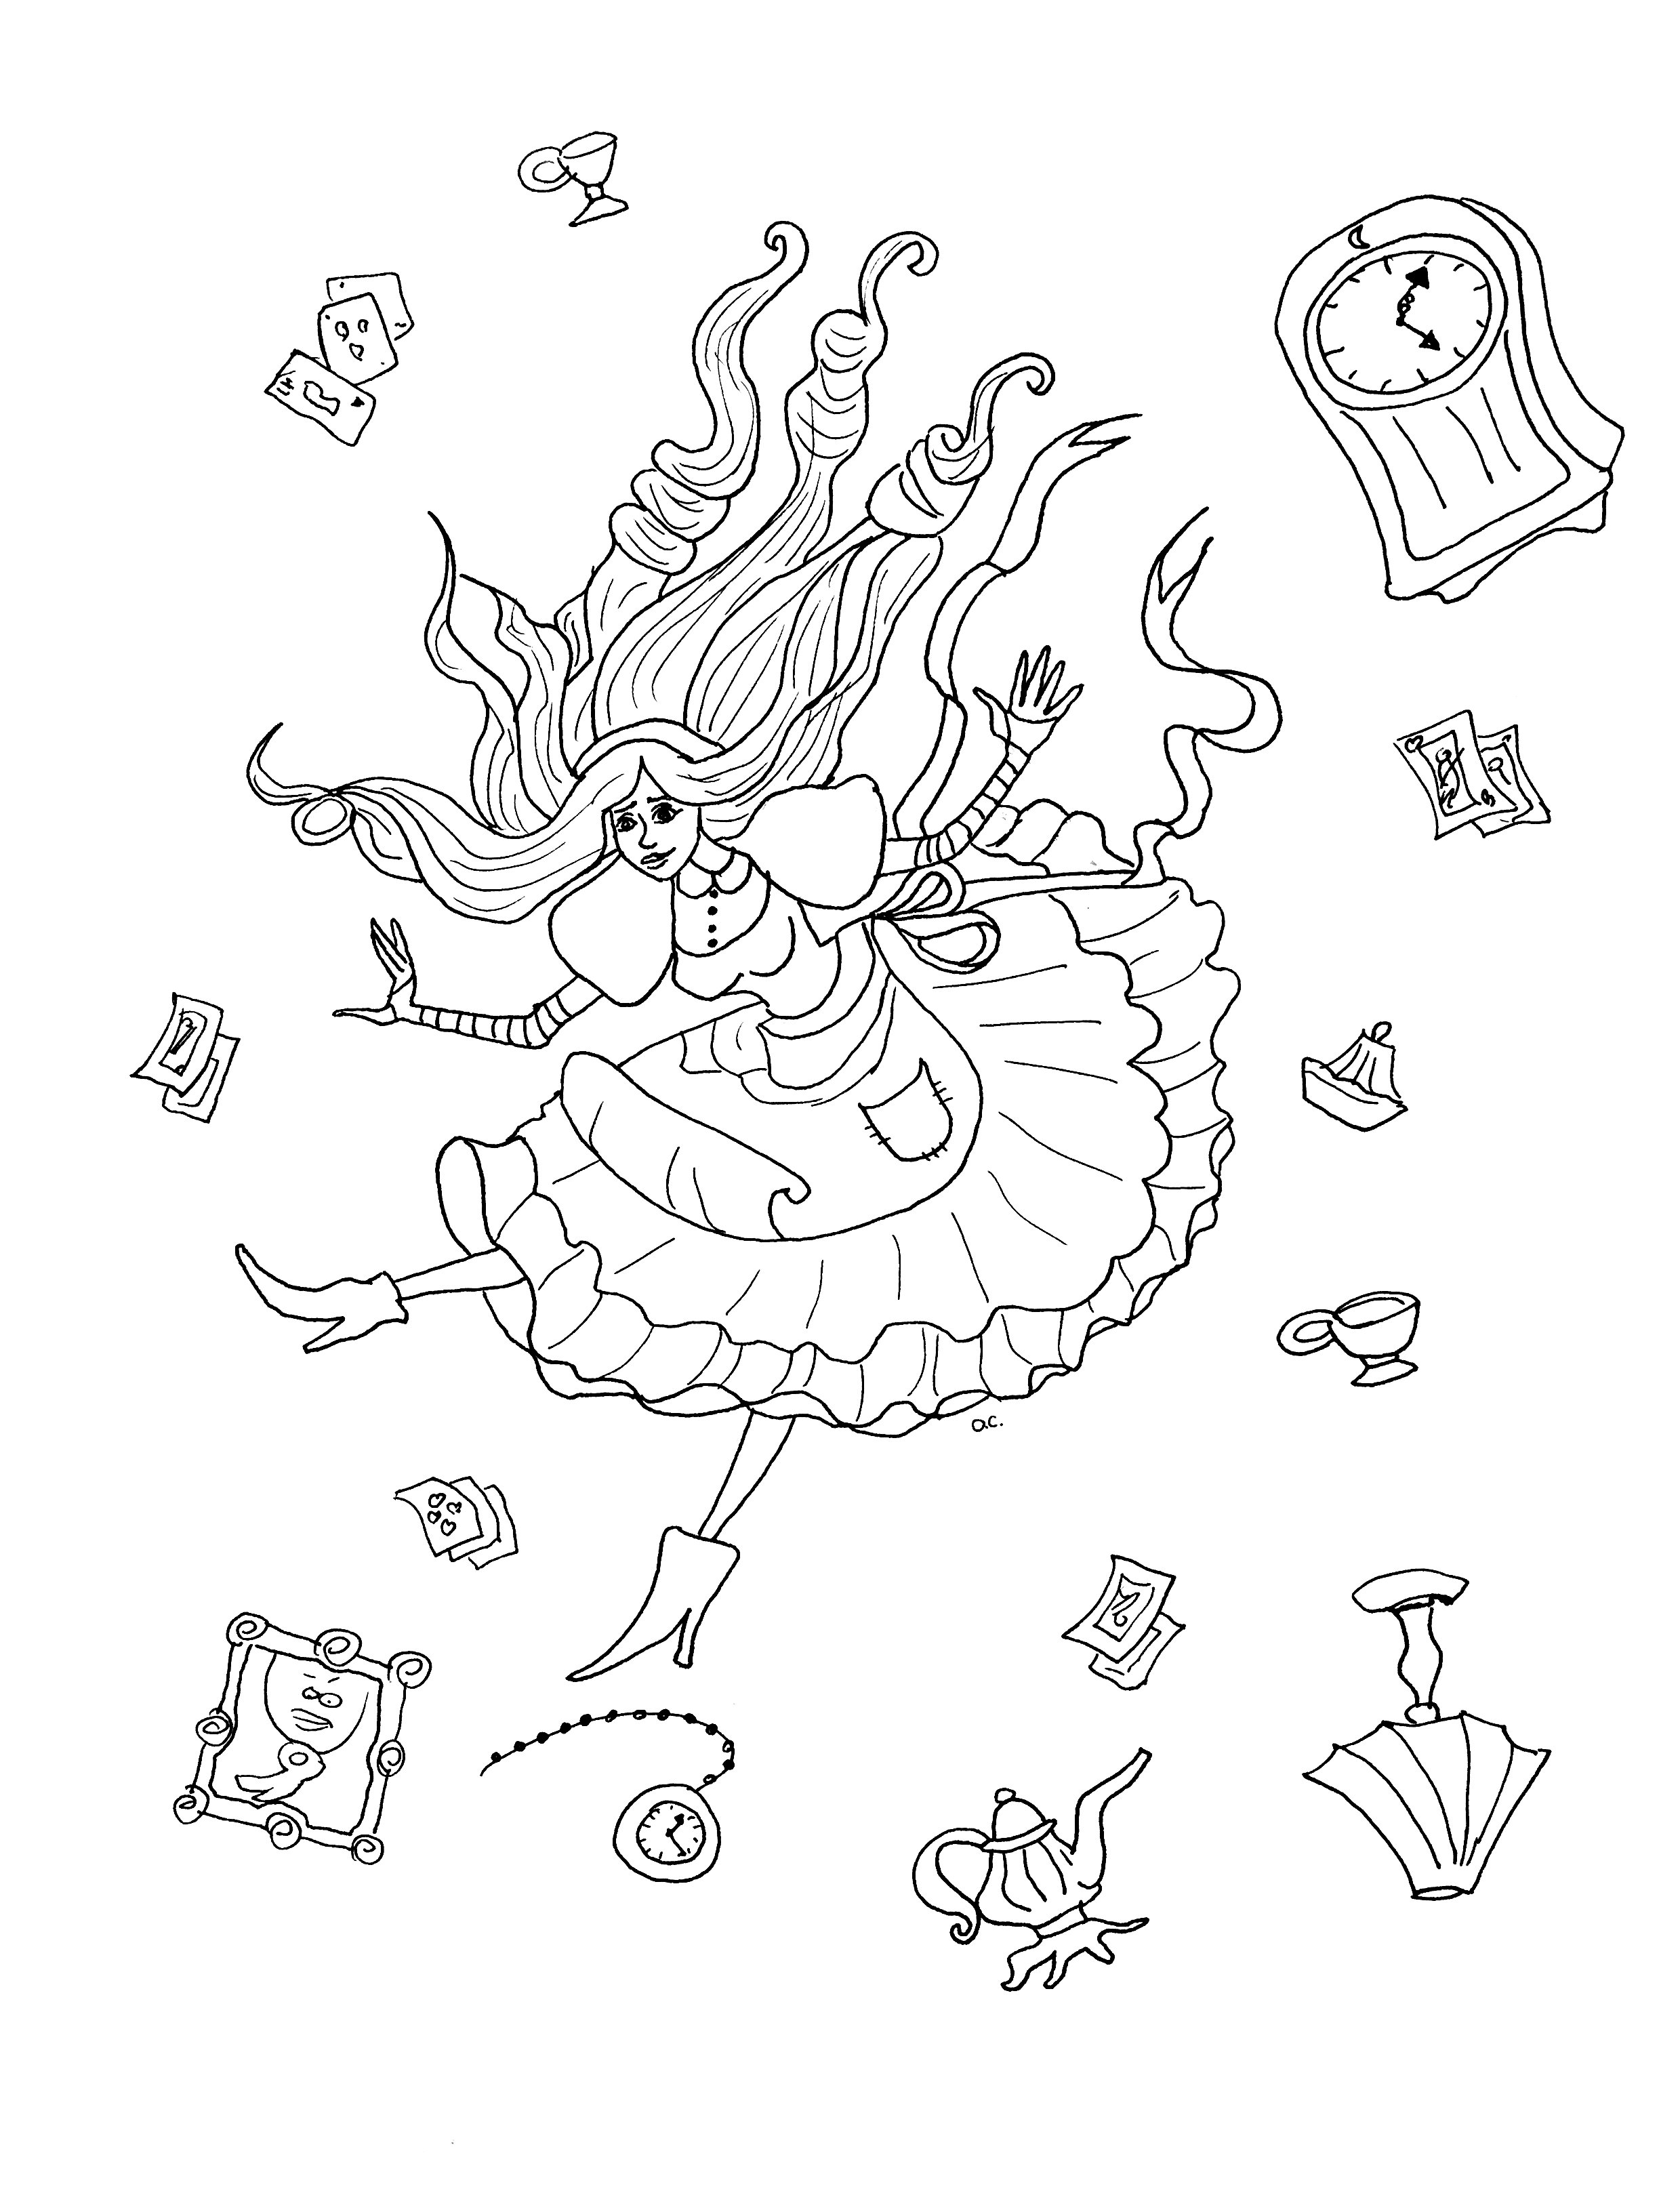 Coloring alice in wonderland with objects by olivier